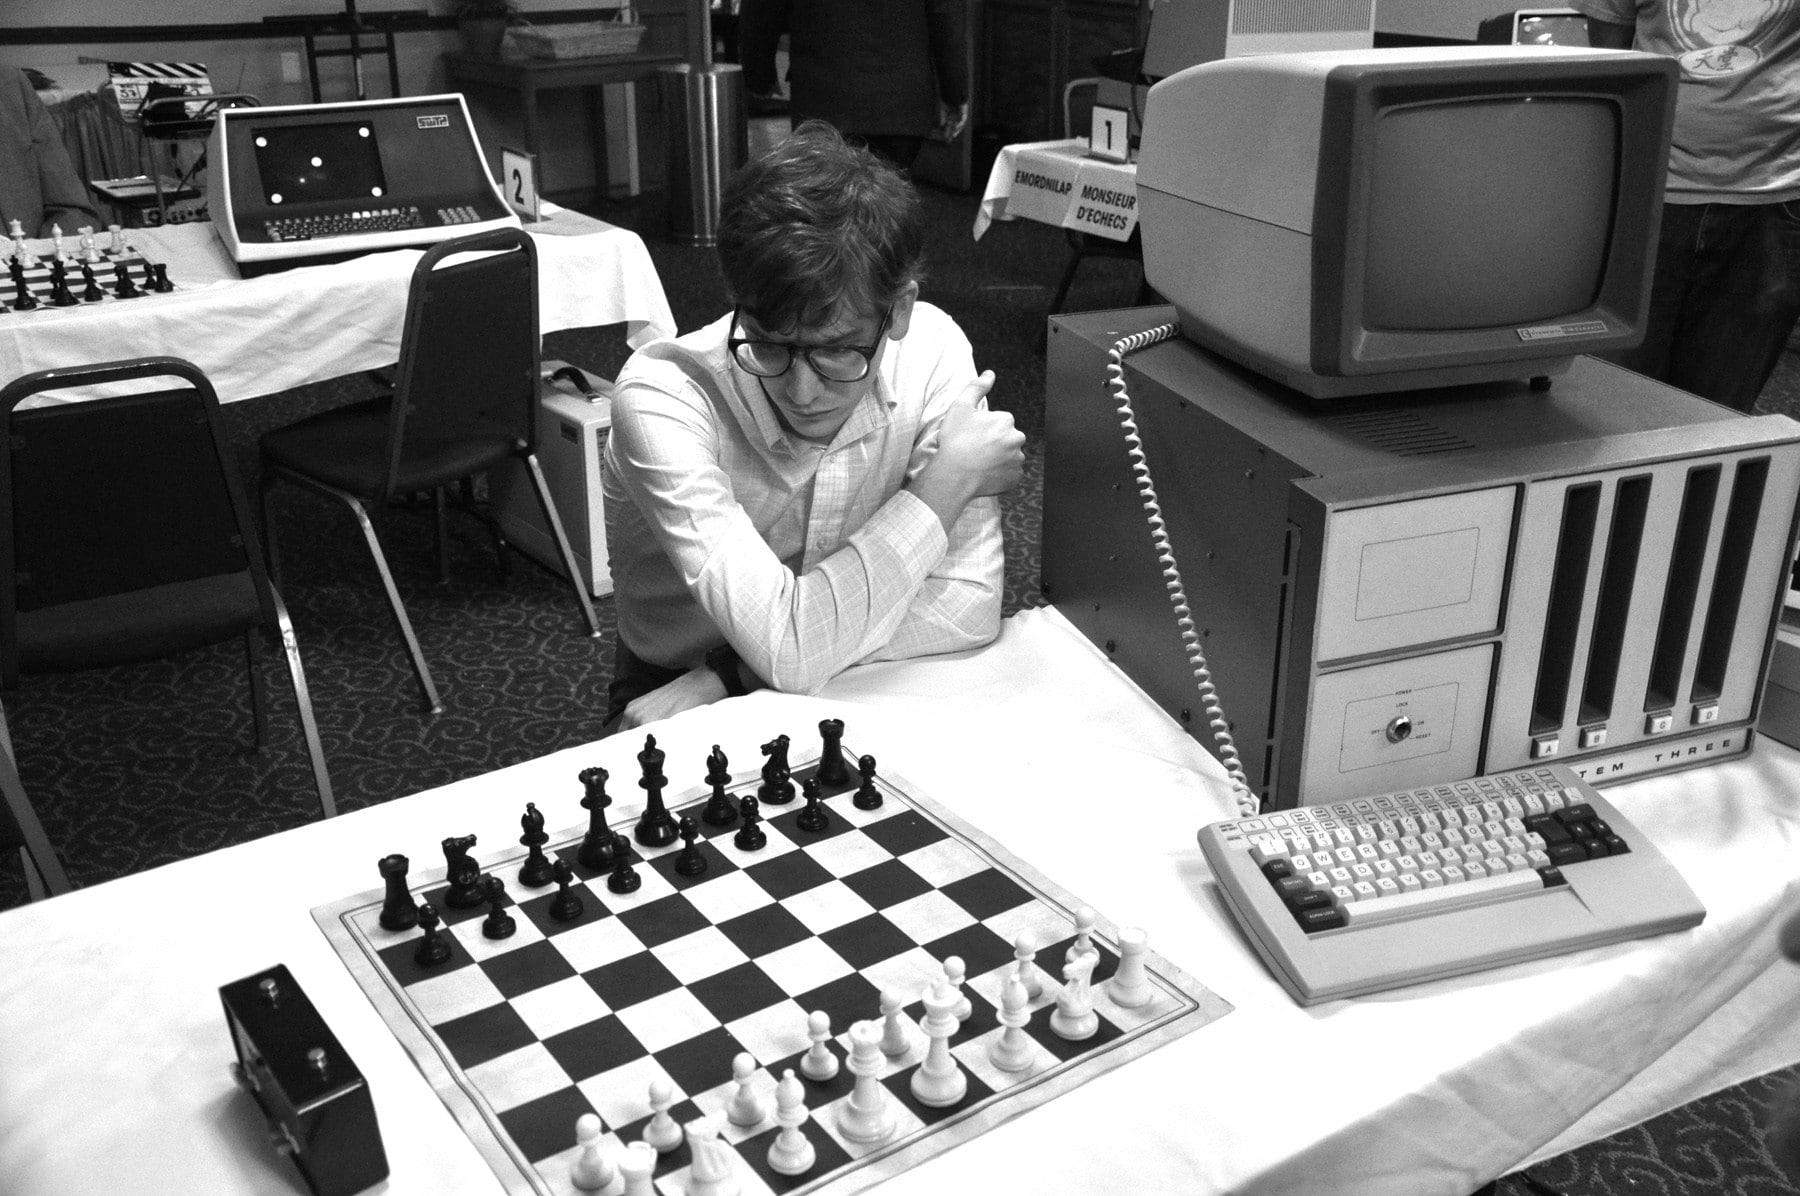 Early Chess Computer